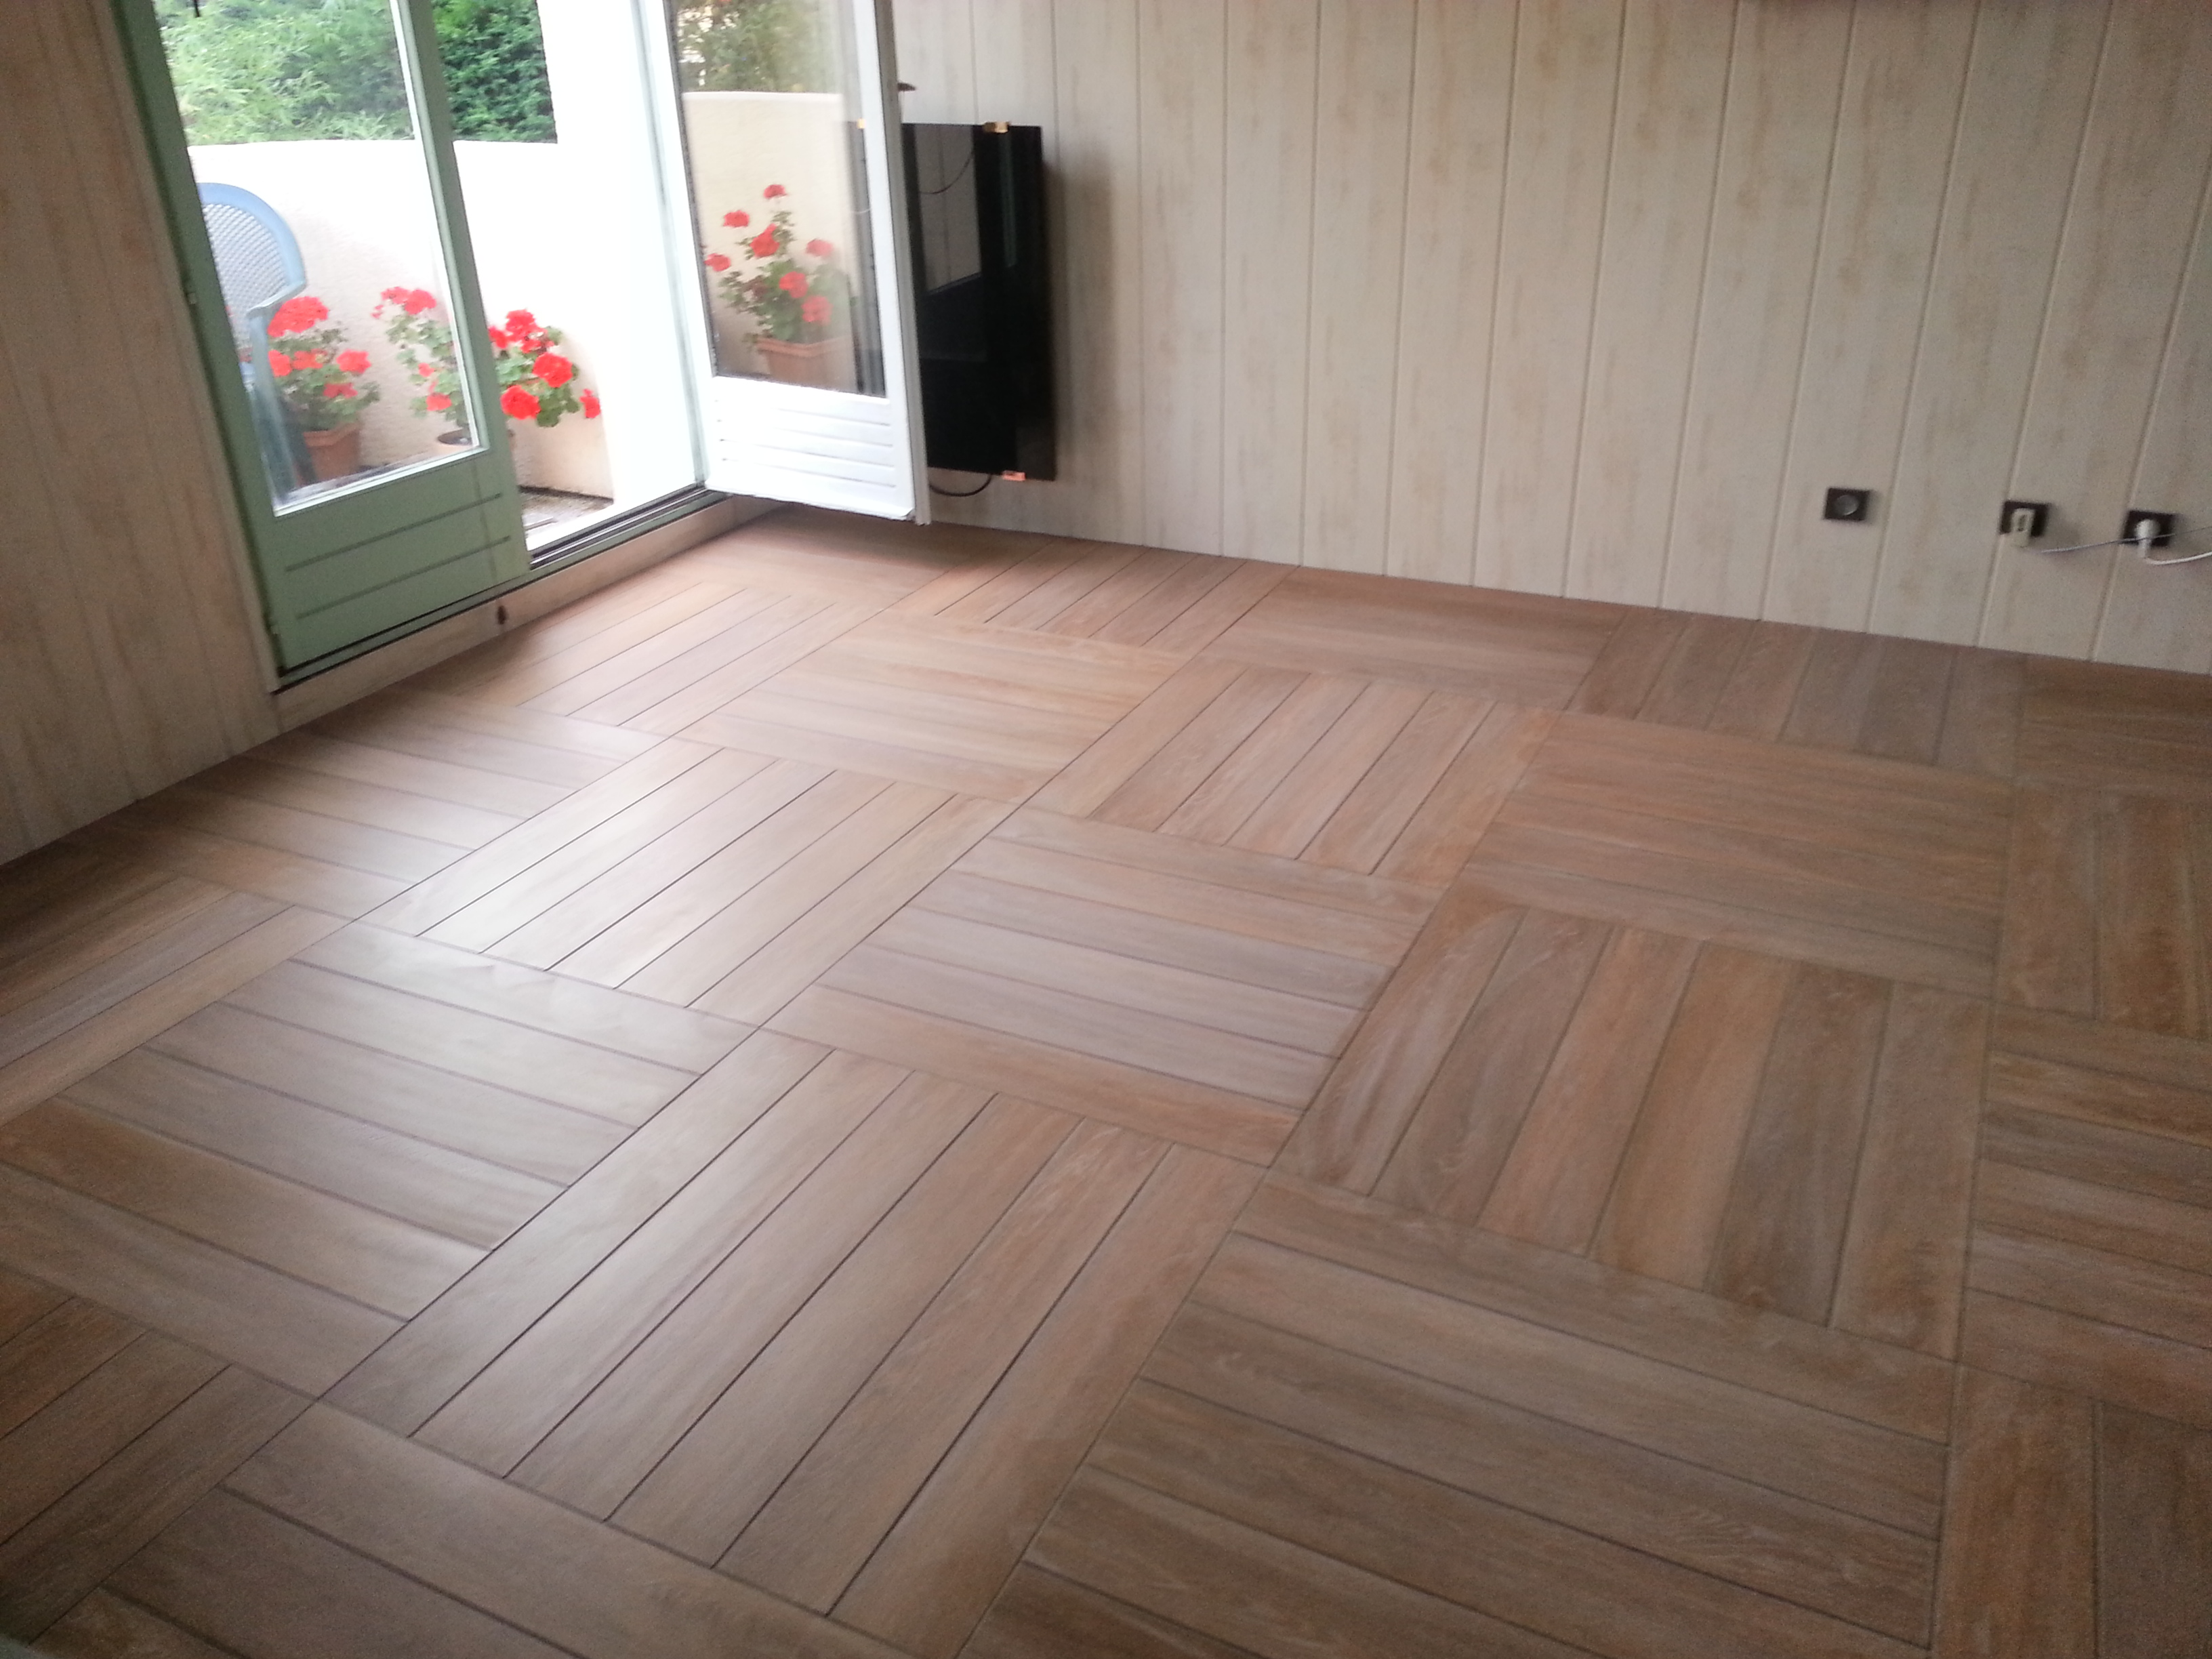 Pose de carrelage imitation parquet for Poser joint carrelage